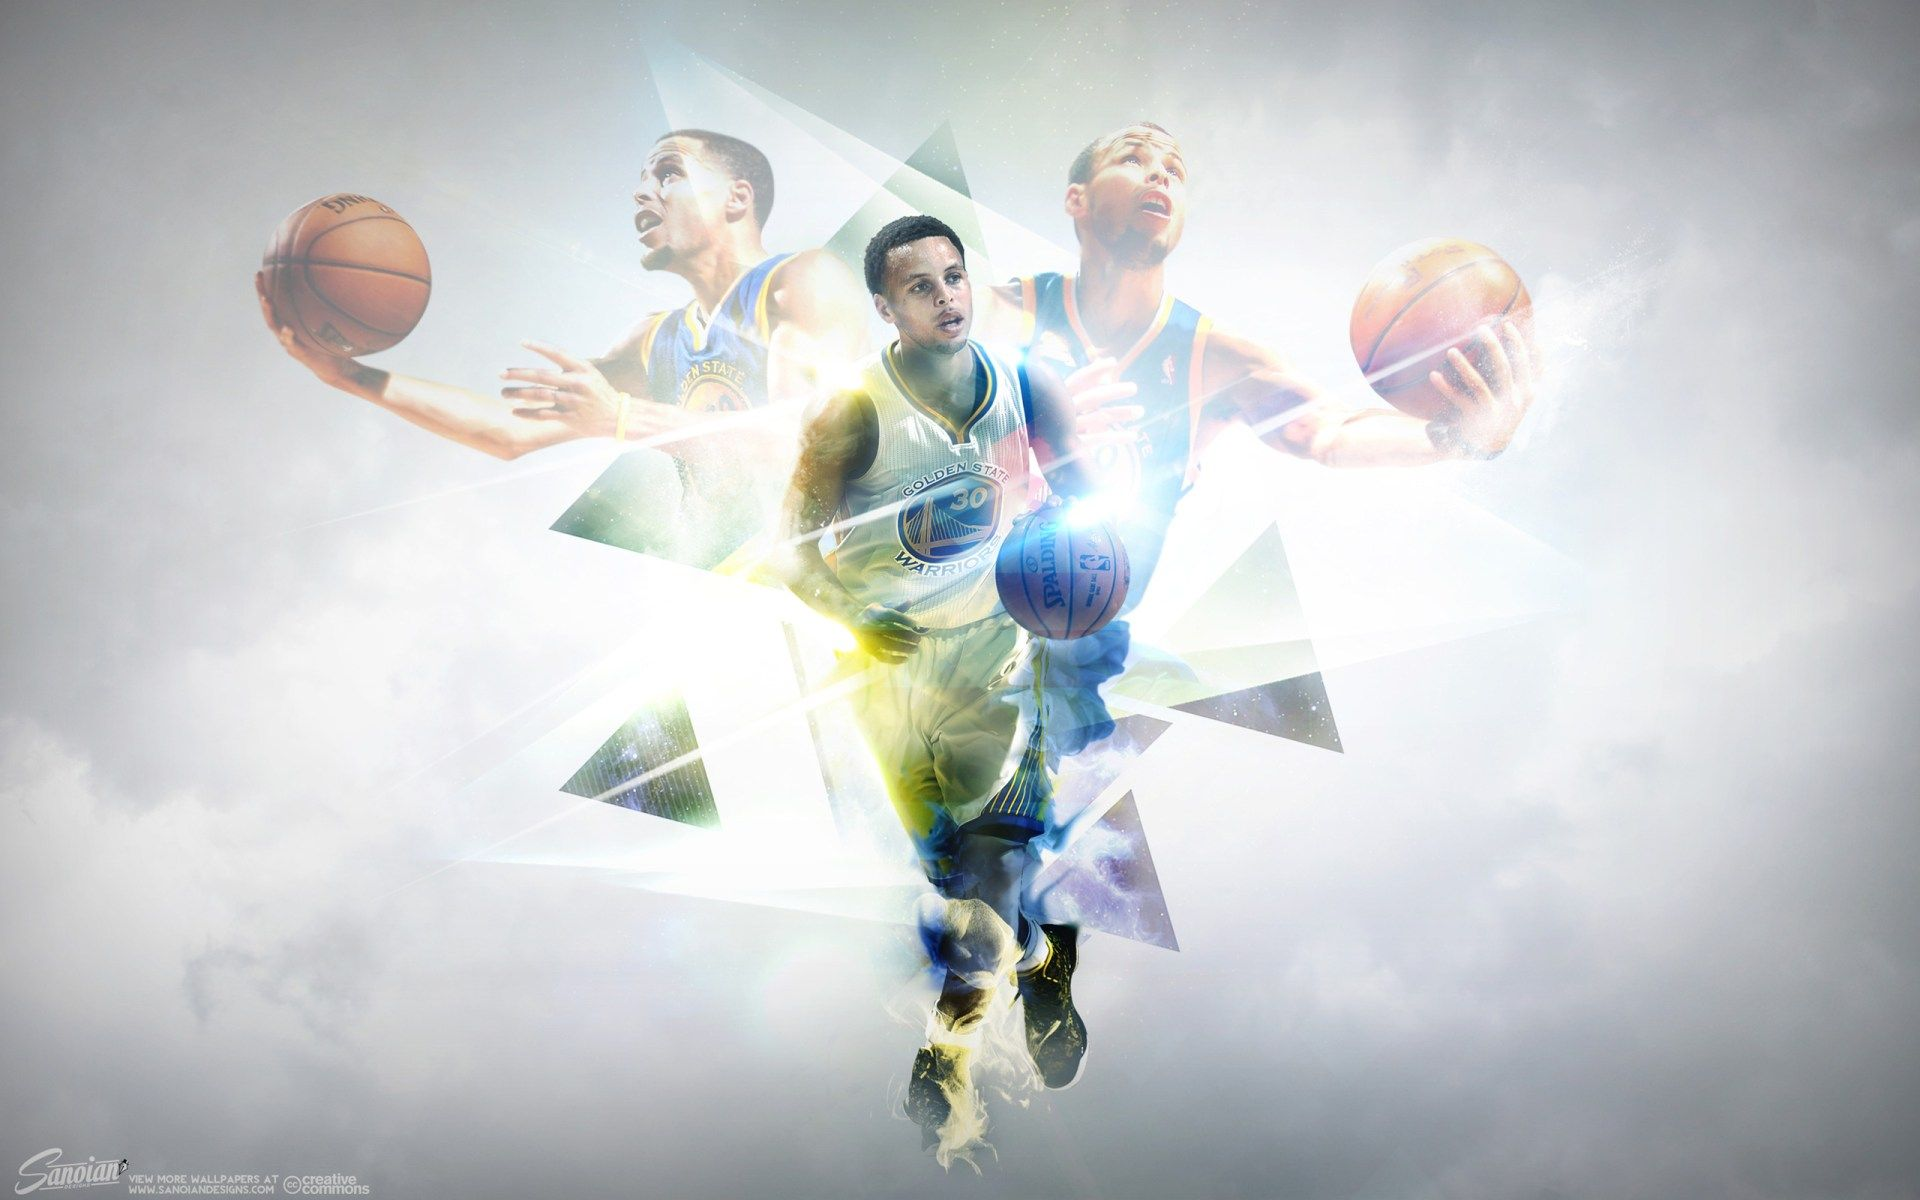 Nba Wallpapers Stephen Curry